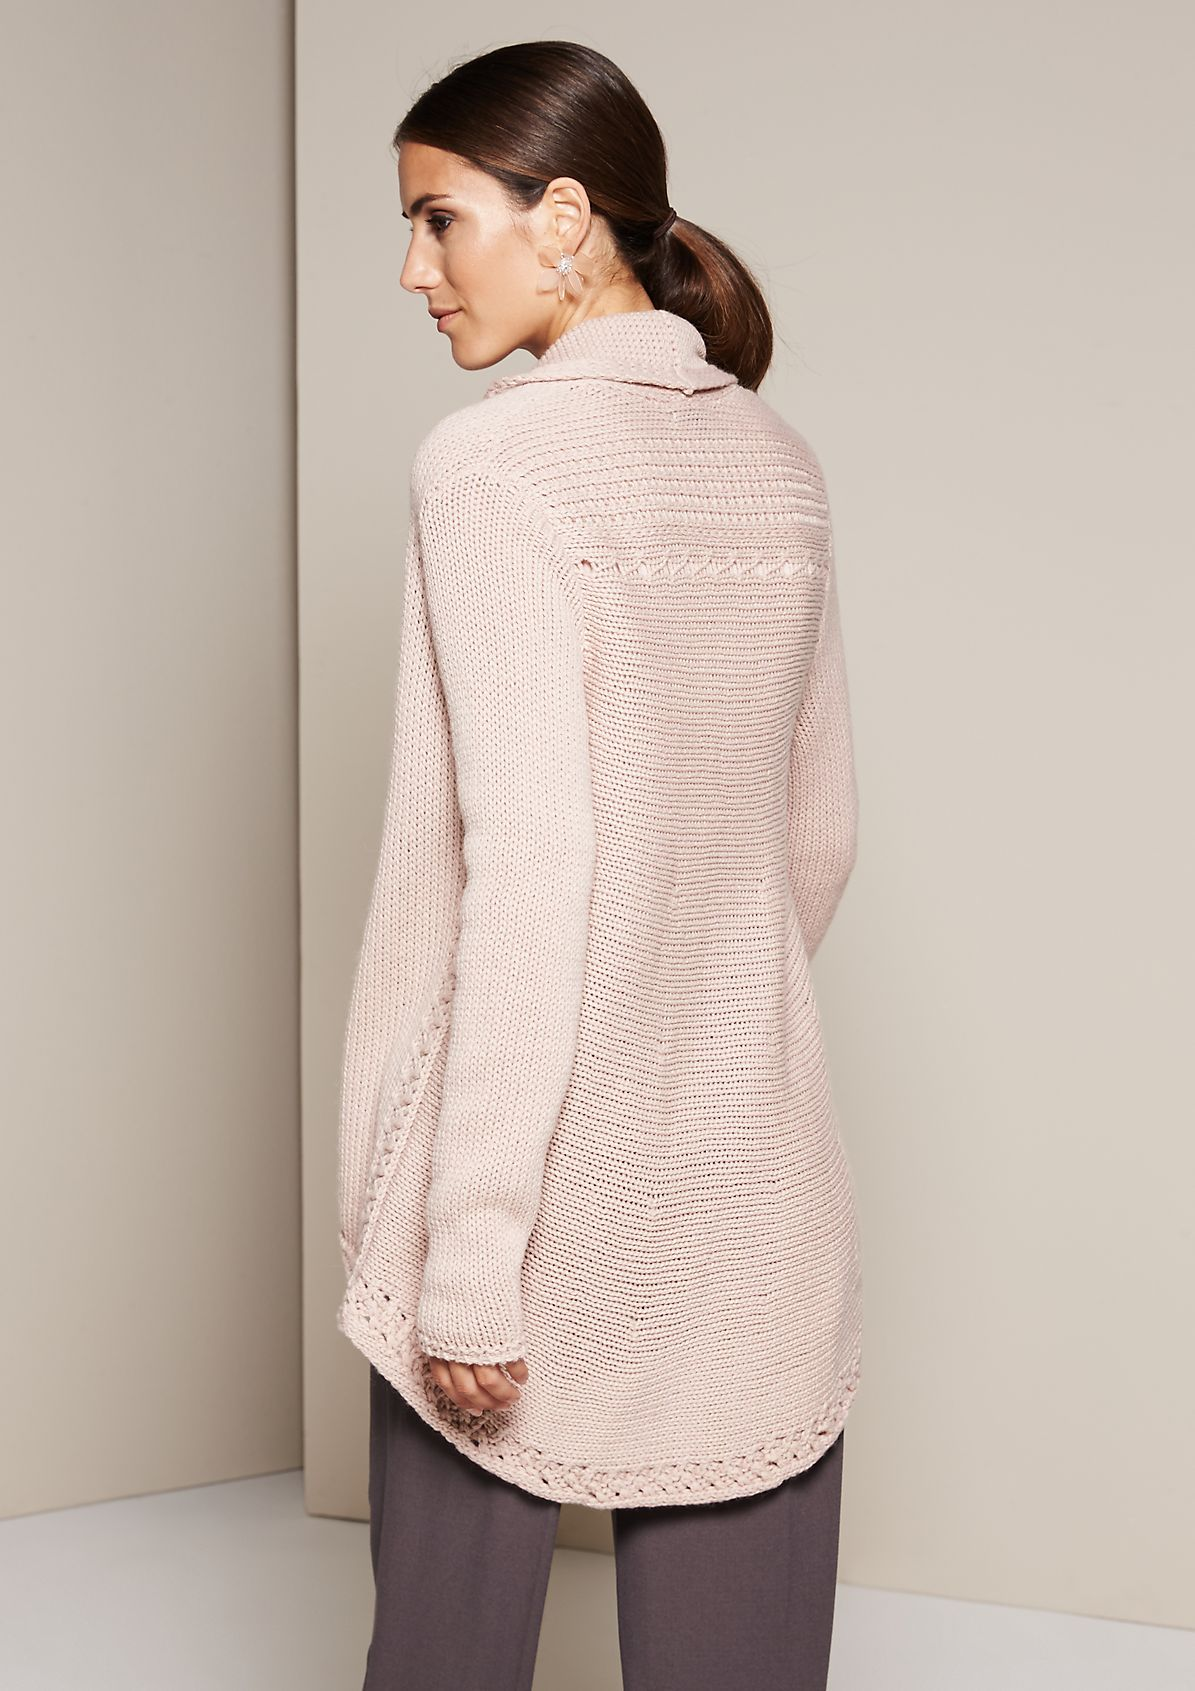 Beautiful cardigan in a mix of patterns from comma